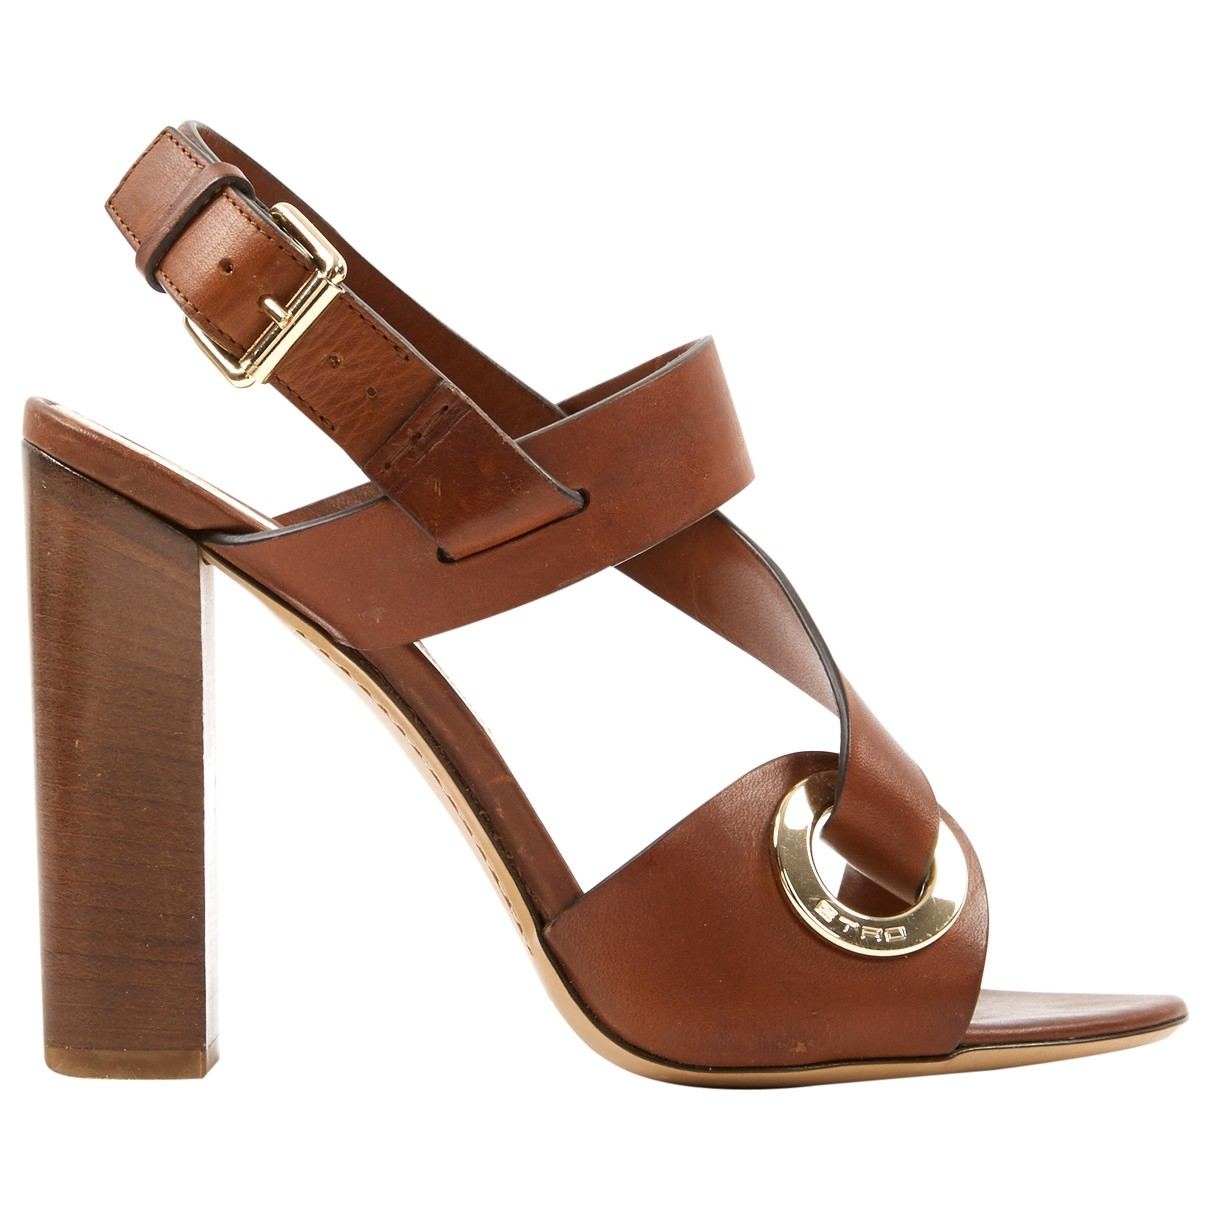 Etro \N Brown Leather Sandals for Women 38 EU